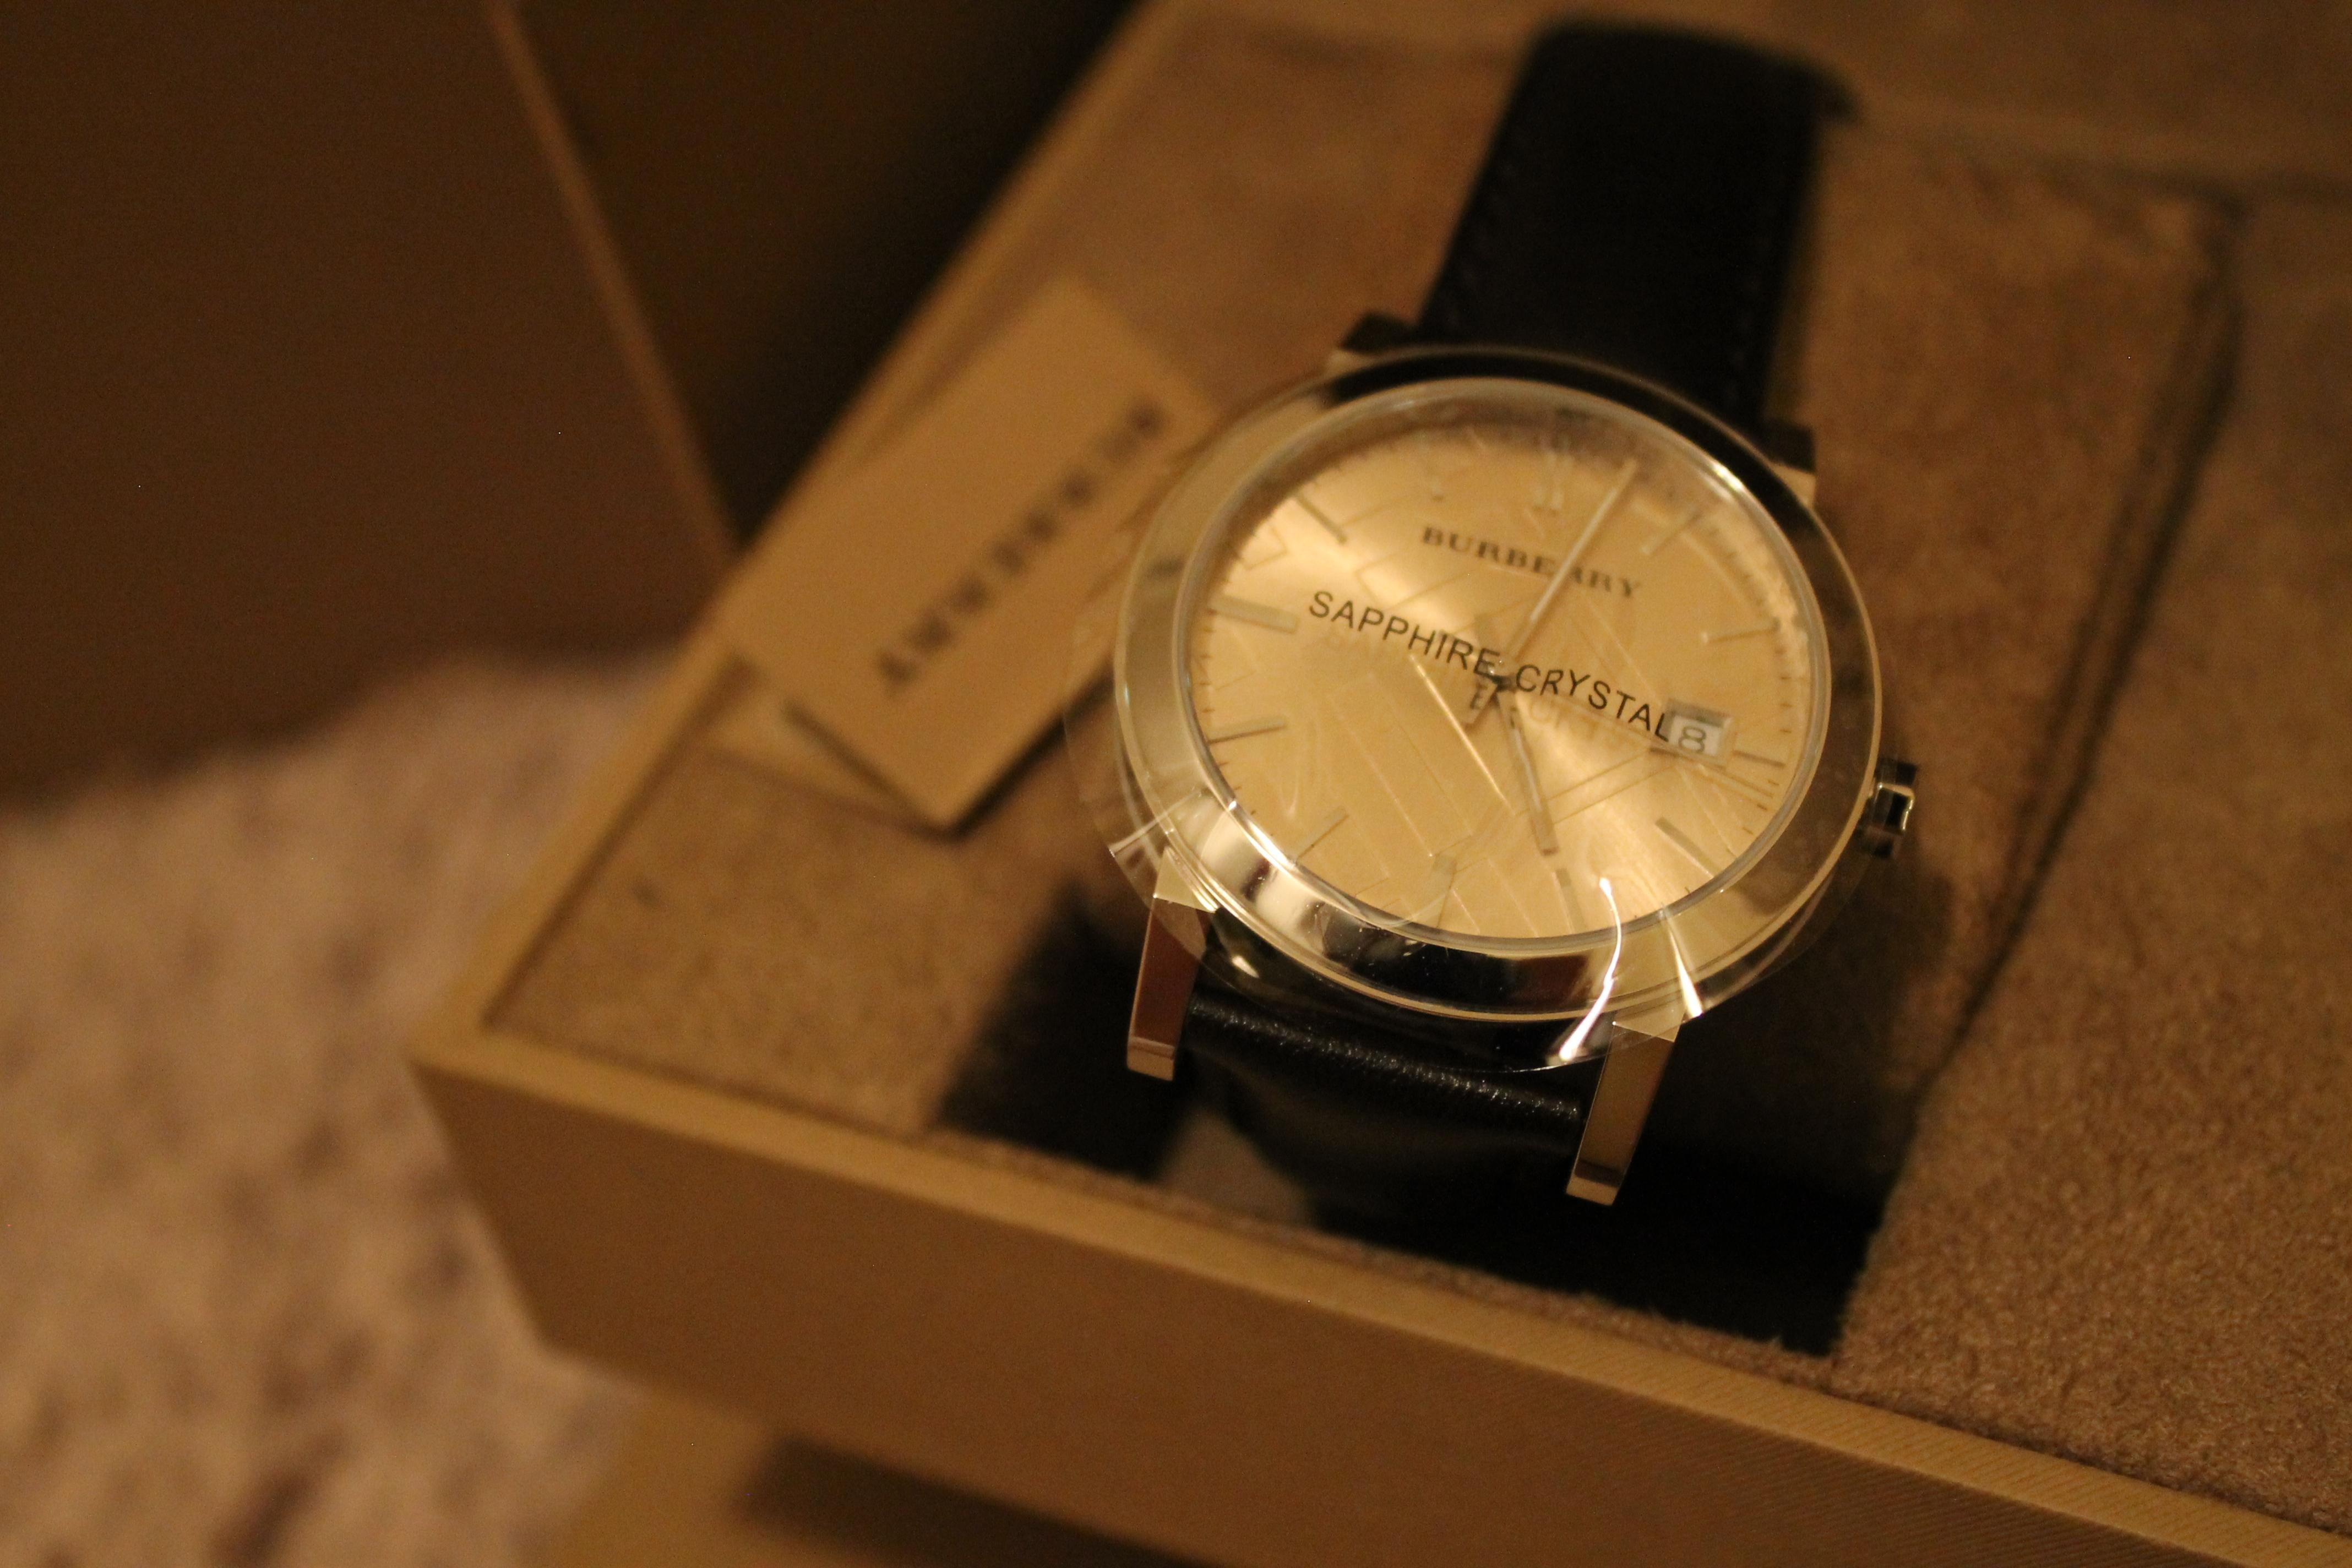 burberry check stamped watch